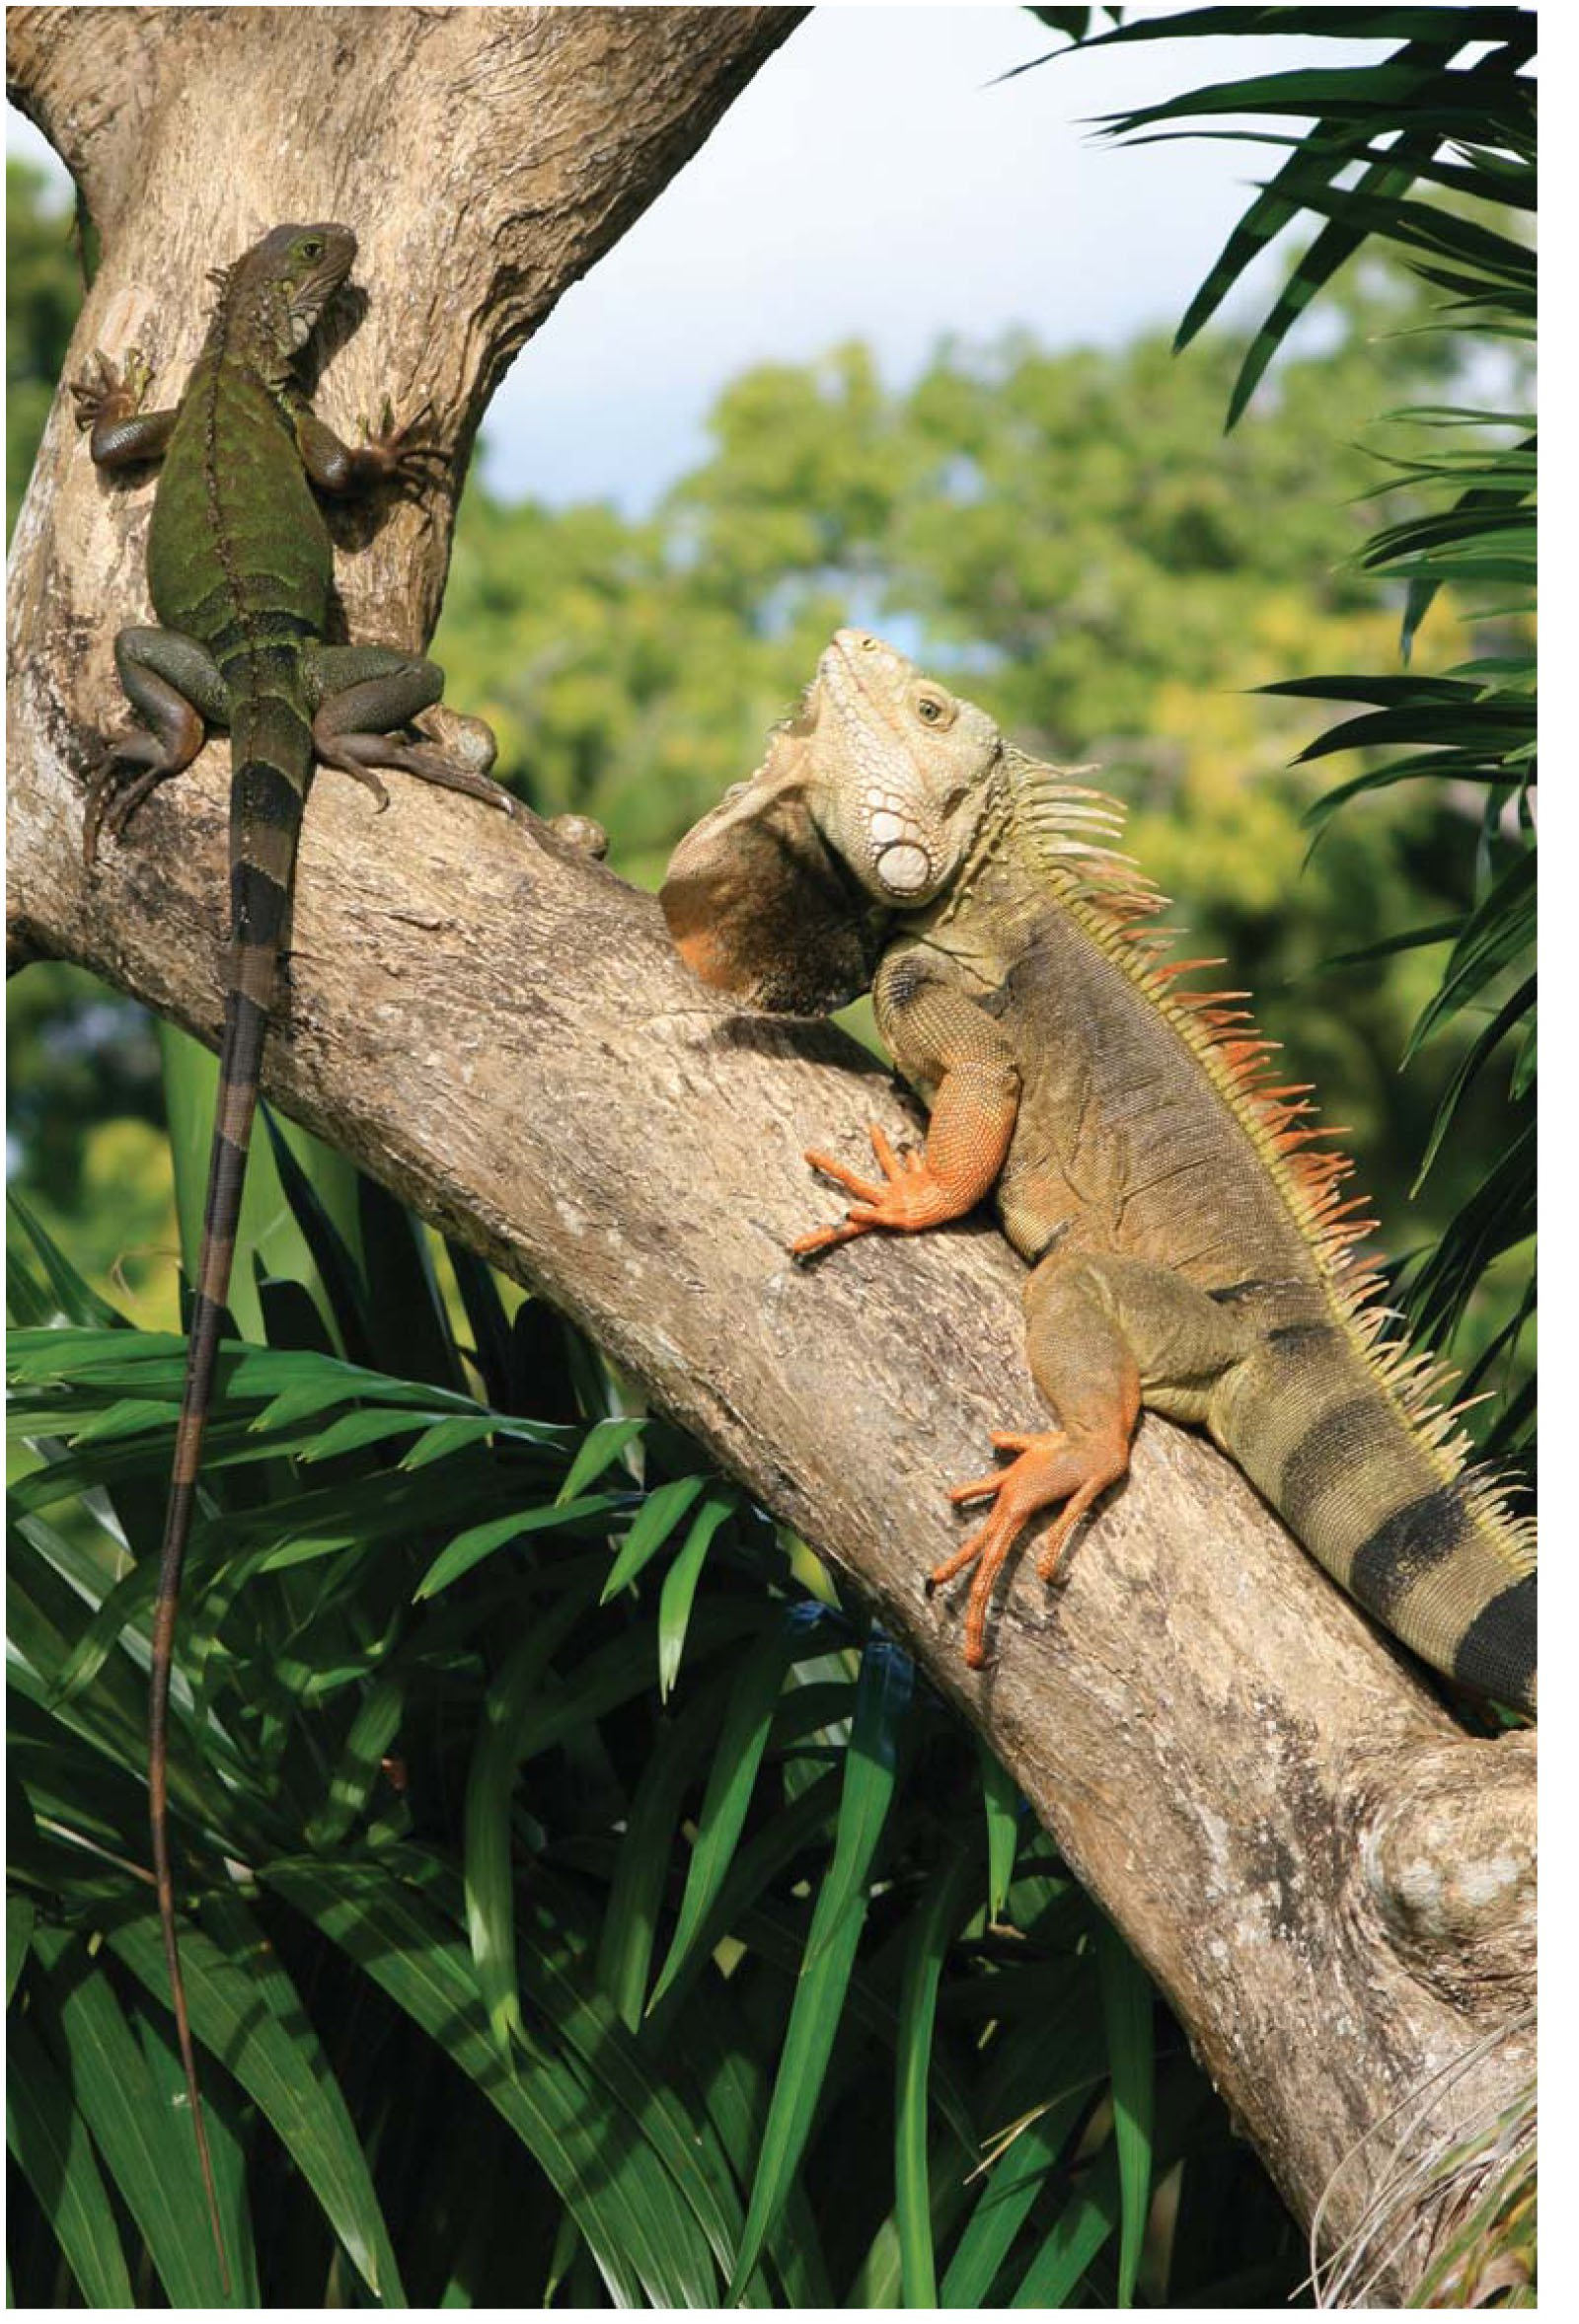 3992589f8d8 Biology and Impacts of Pacific Island Invasive Species. 10. Iguana ...